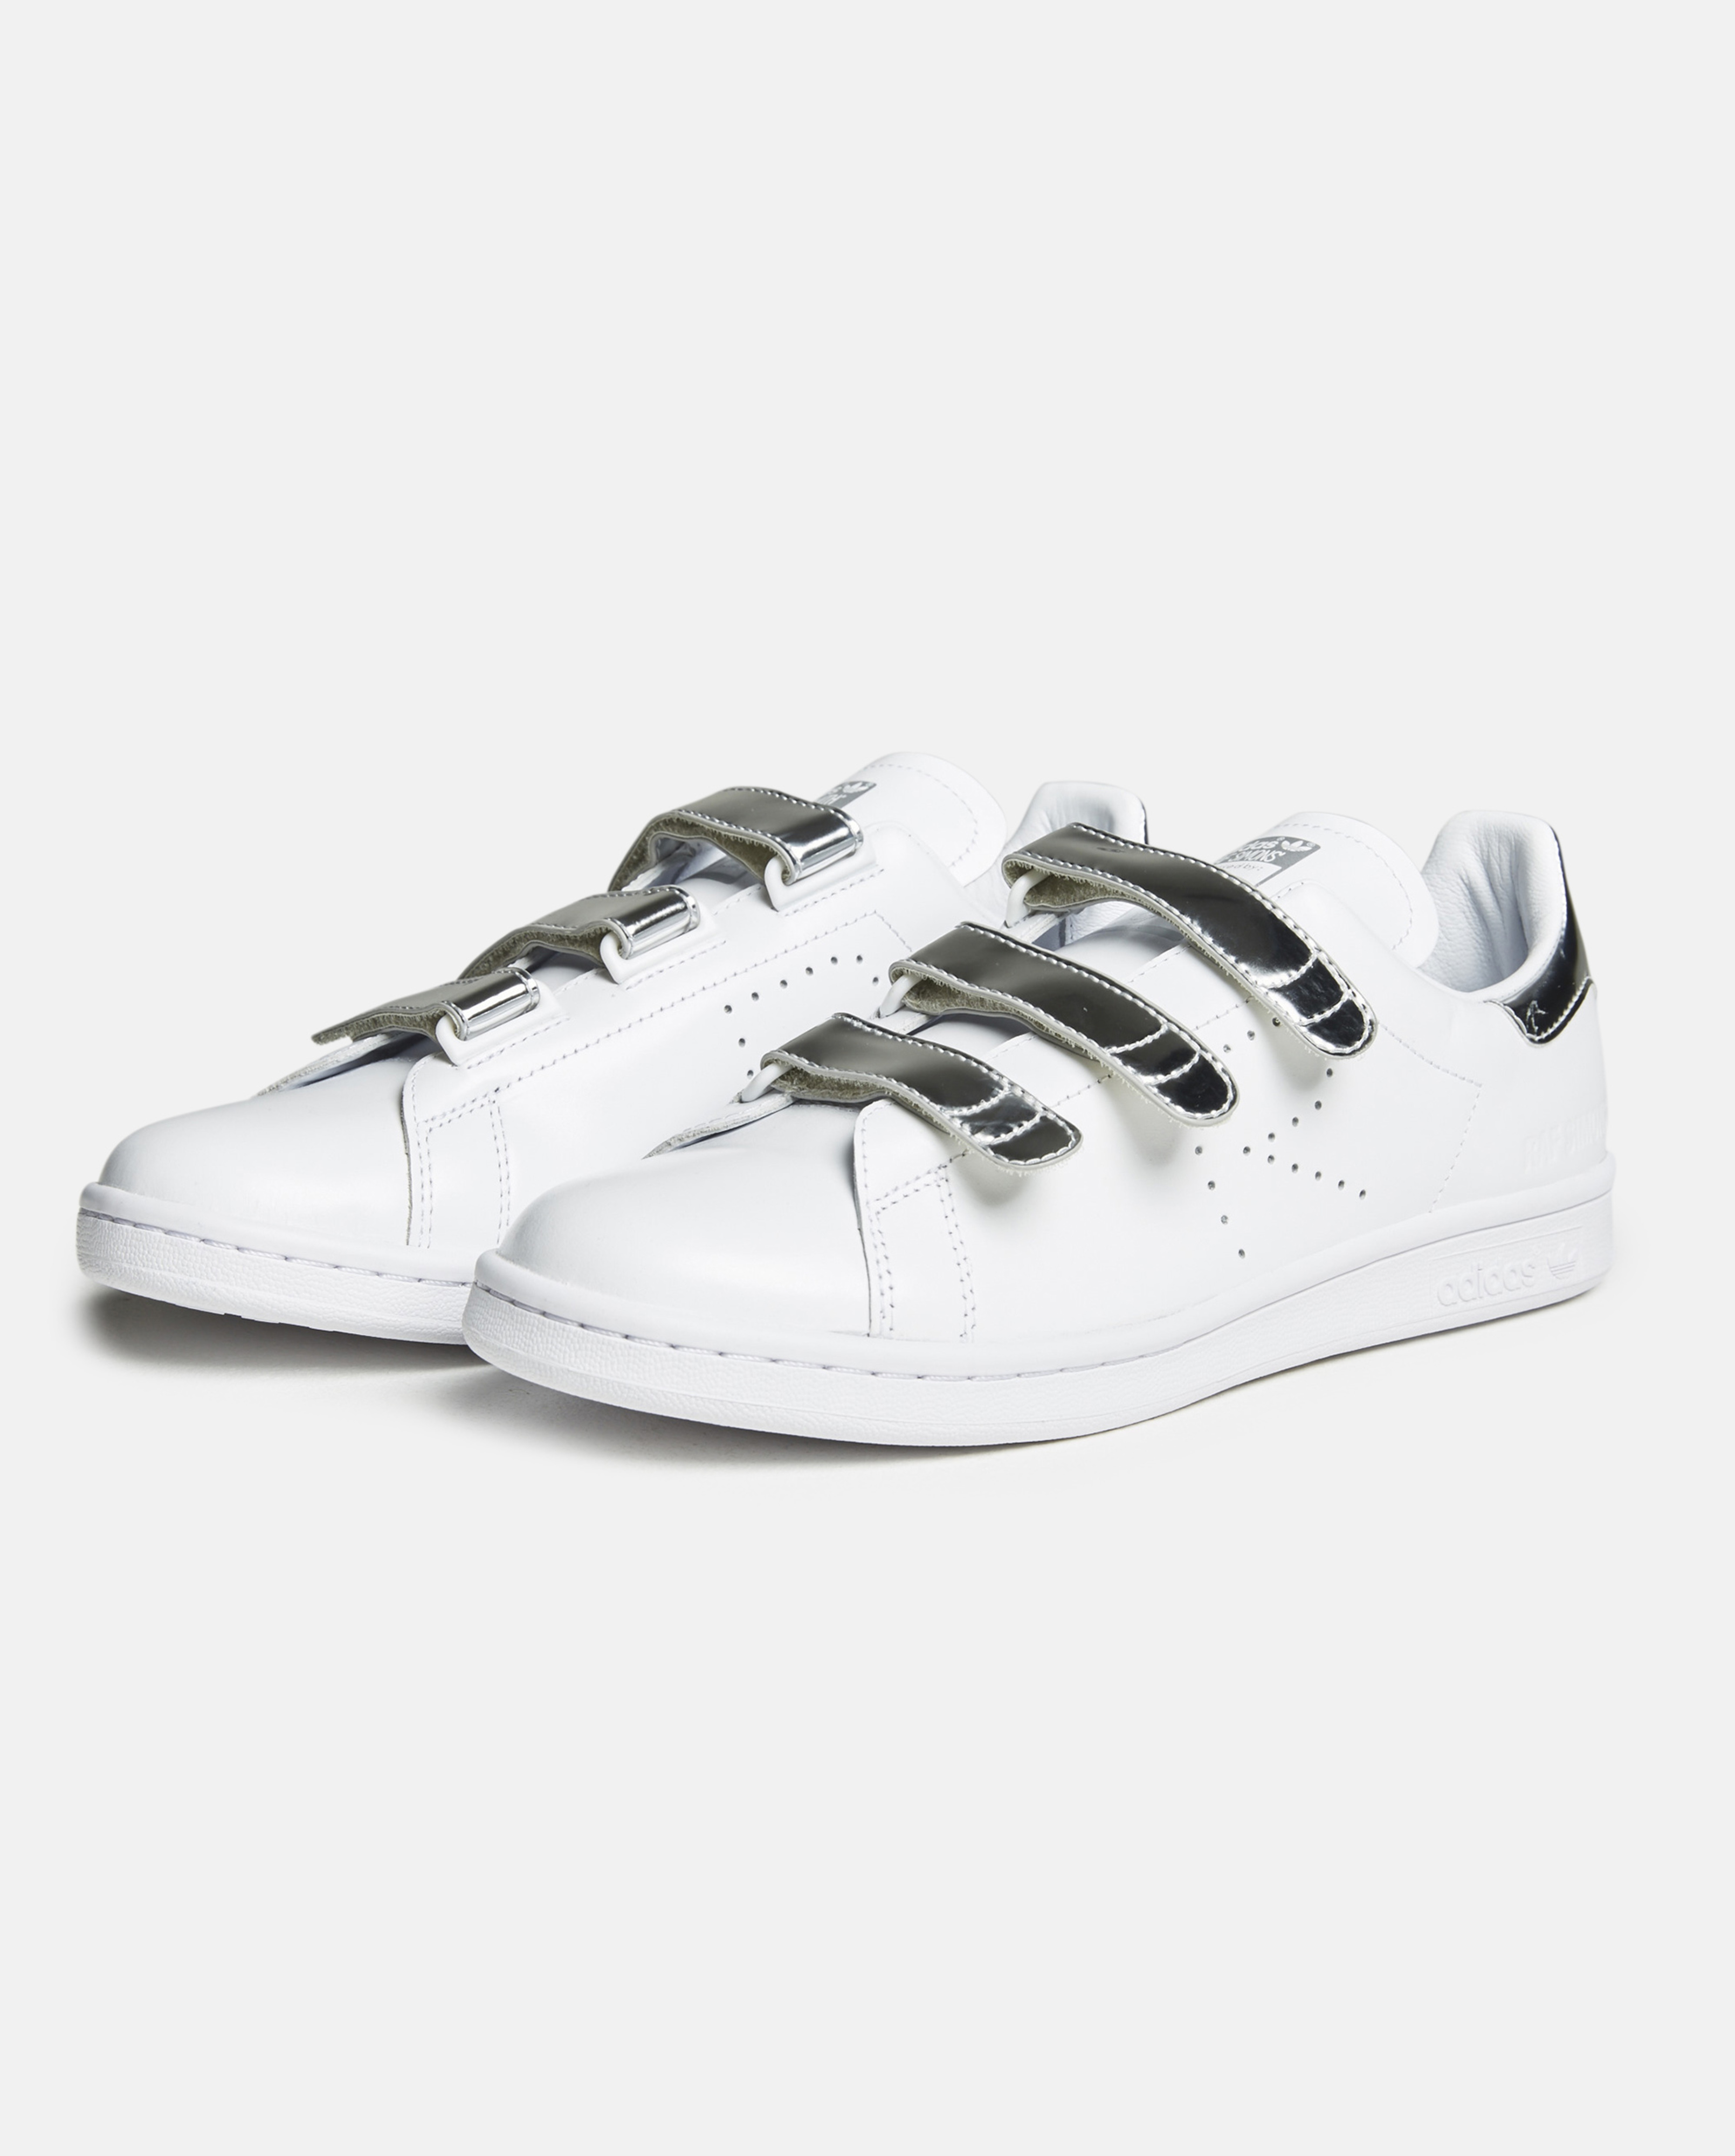 adidas By Raf Simons Raf X Stan Smith Cf Leather Trainers in